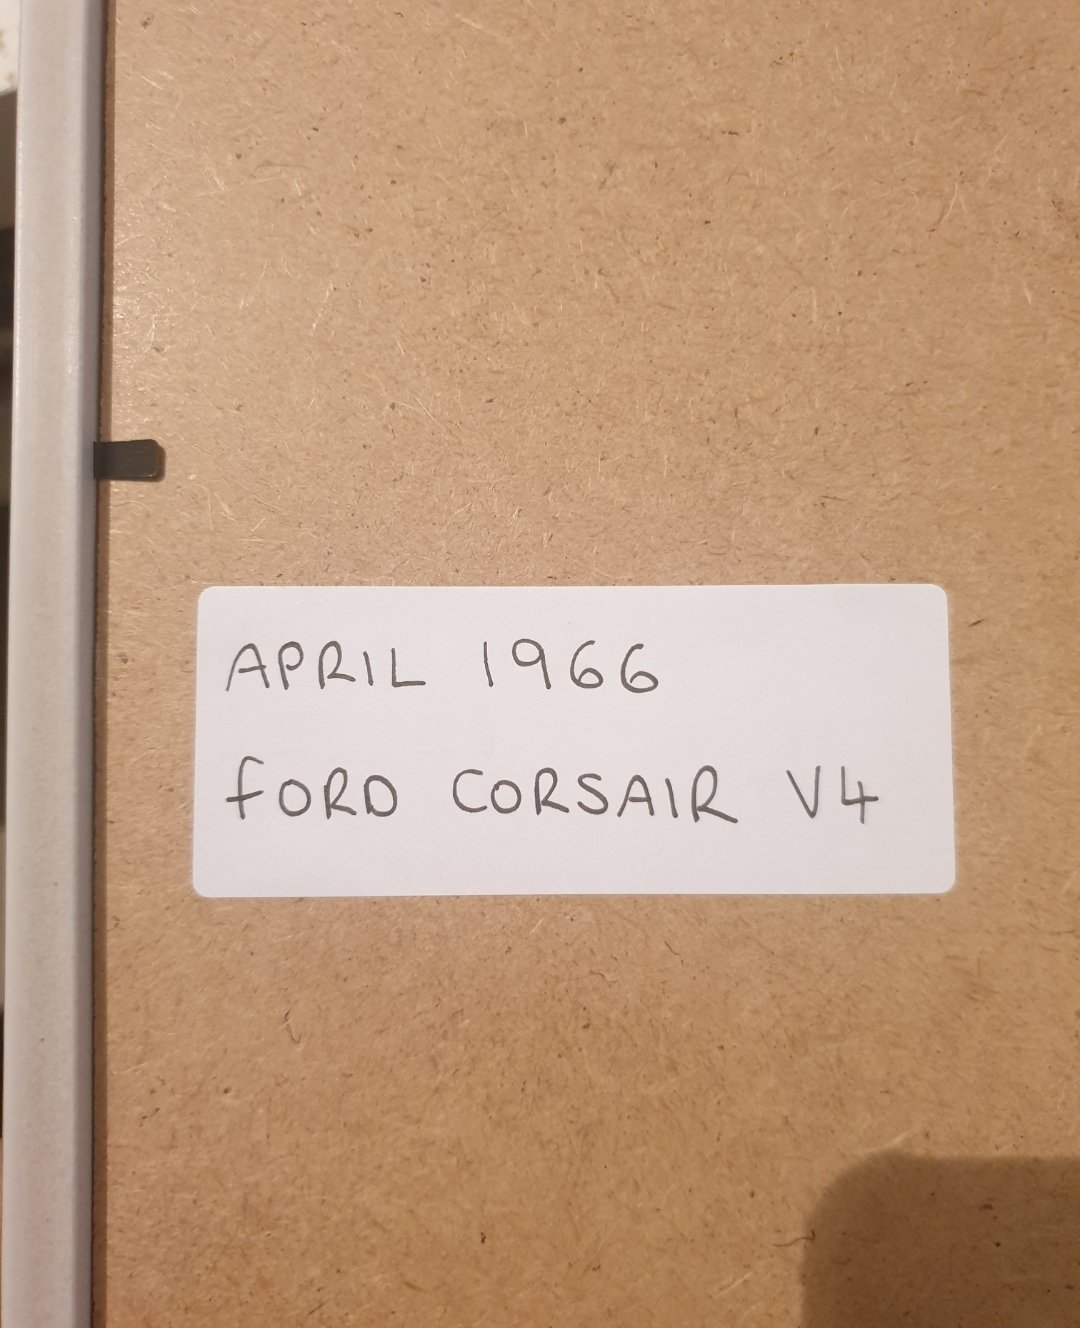 1966 Ford Corsair Framed Advert Original  For Sale (picture 2 of 2)